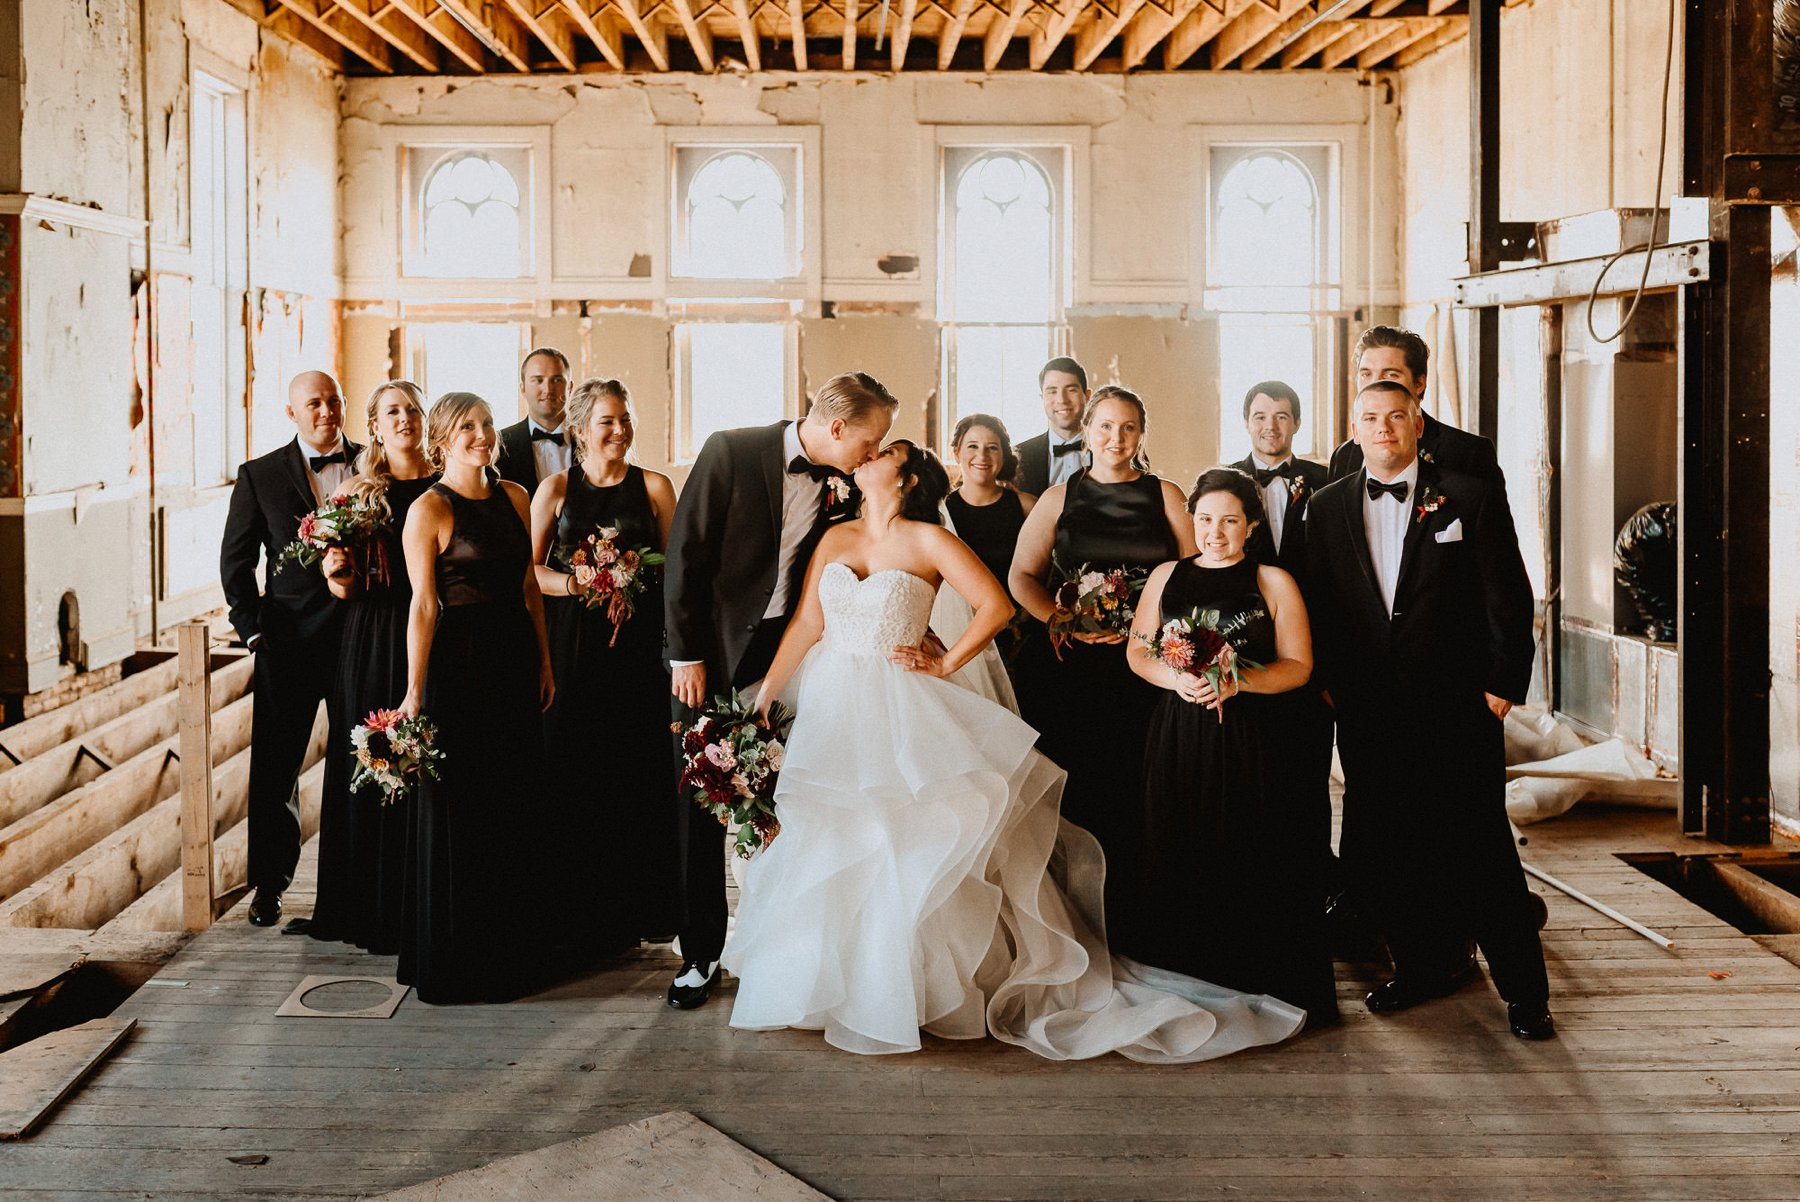 excelsior_lancaster_wedding_photographeer-030.jpg